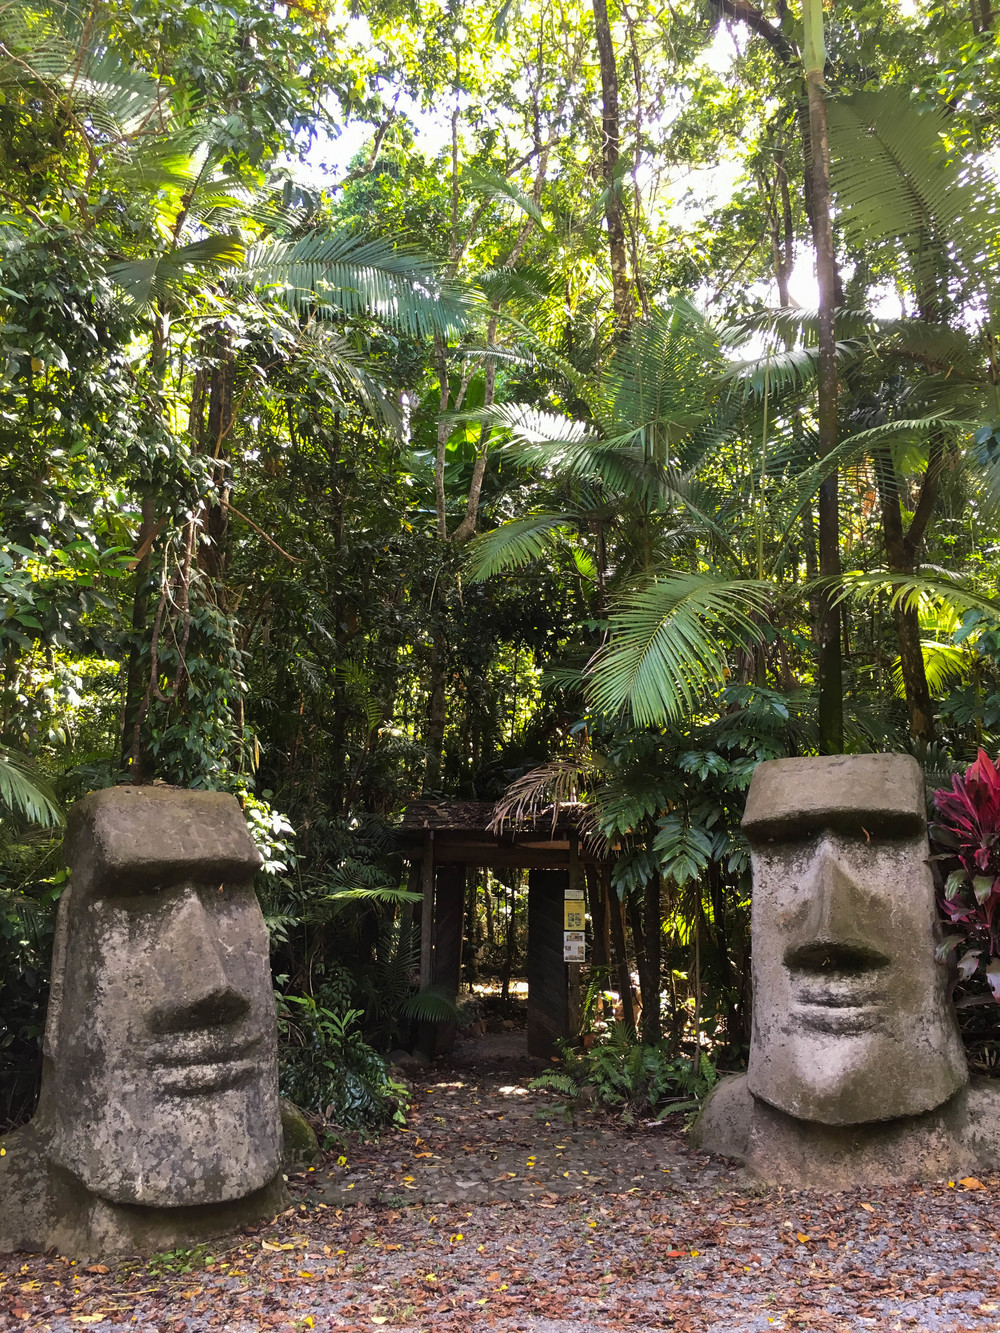 Entrance to Rainforest Hideaway